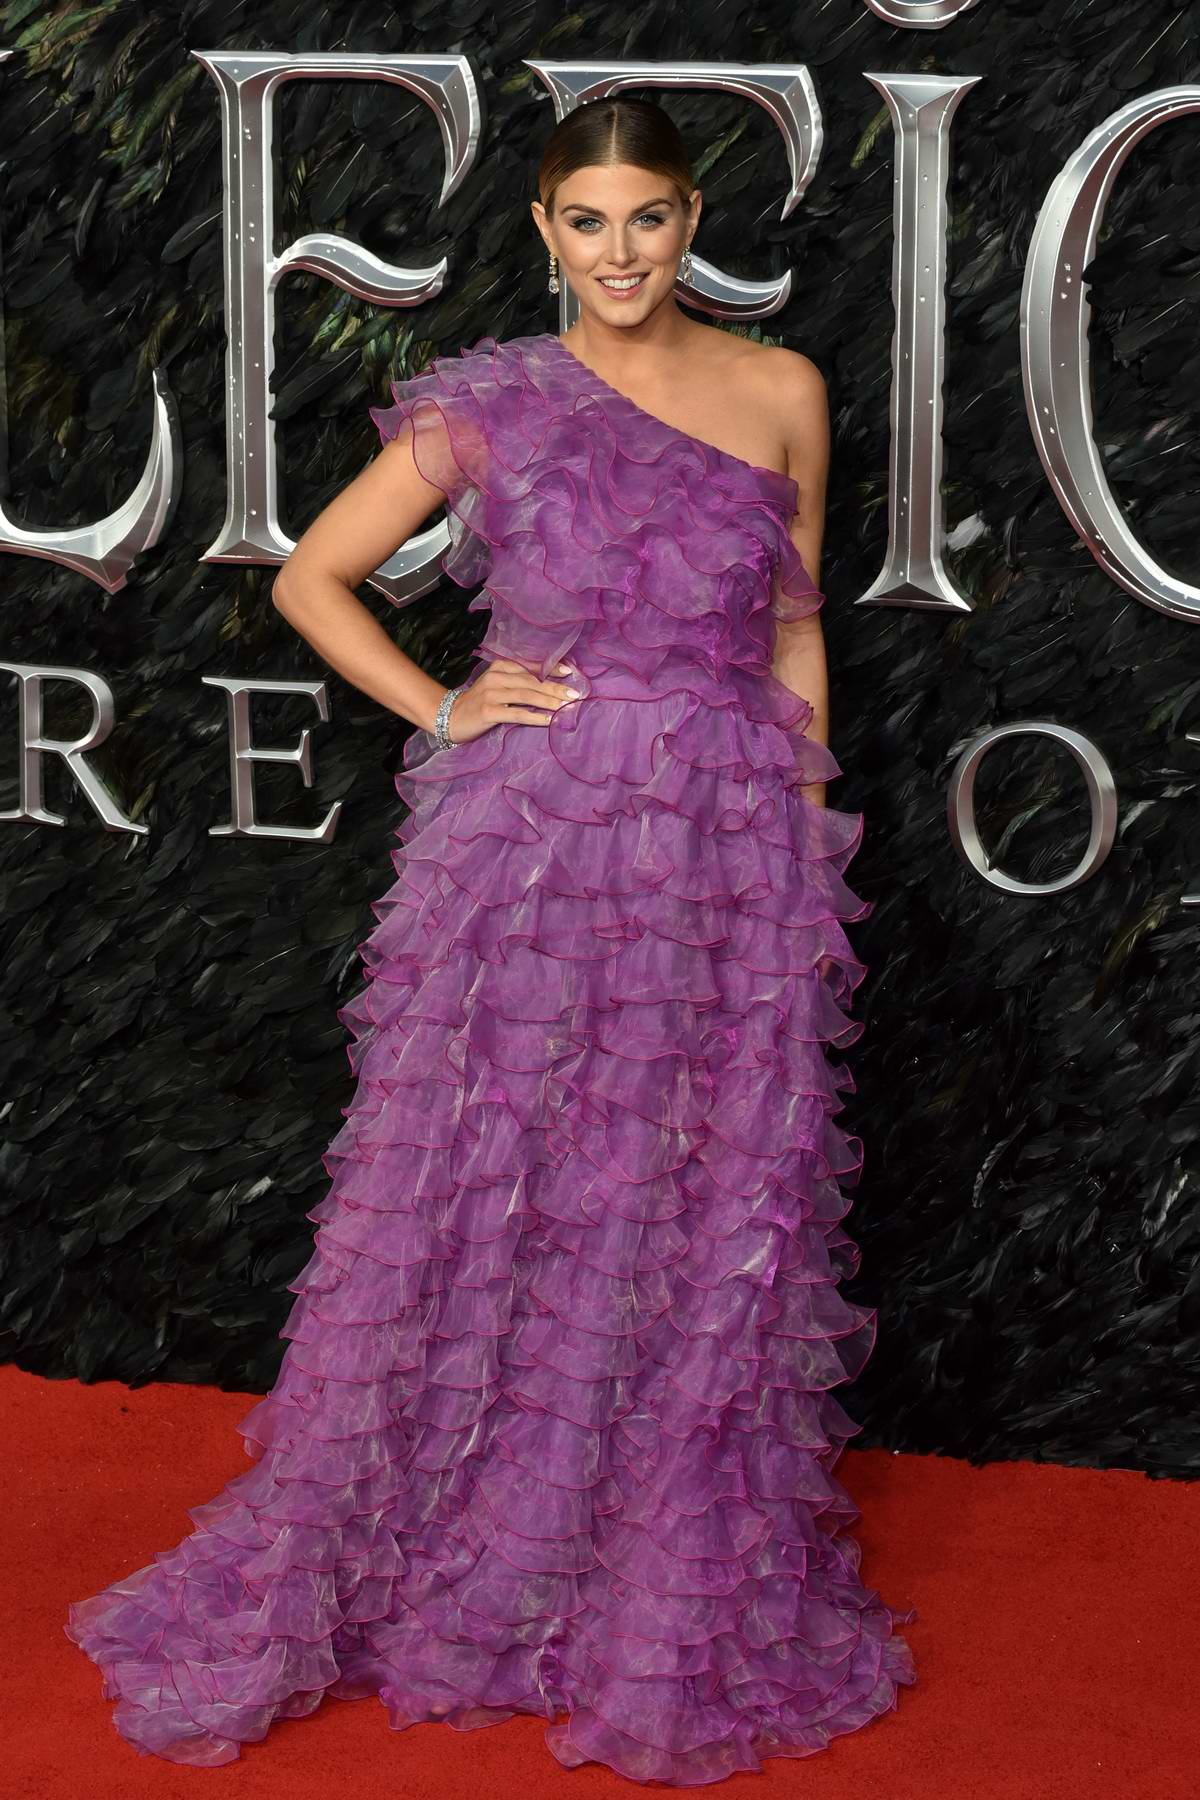 Ashley James attends the European Premiere of Maleficent: Mistress of Evil at IMAX Waterloo in London, UK